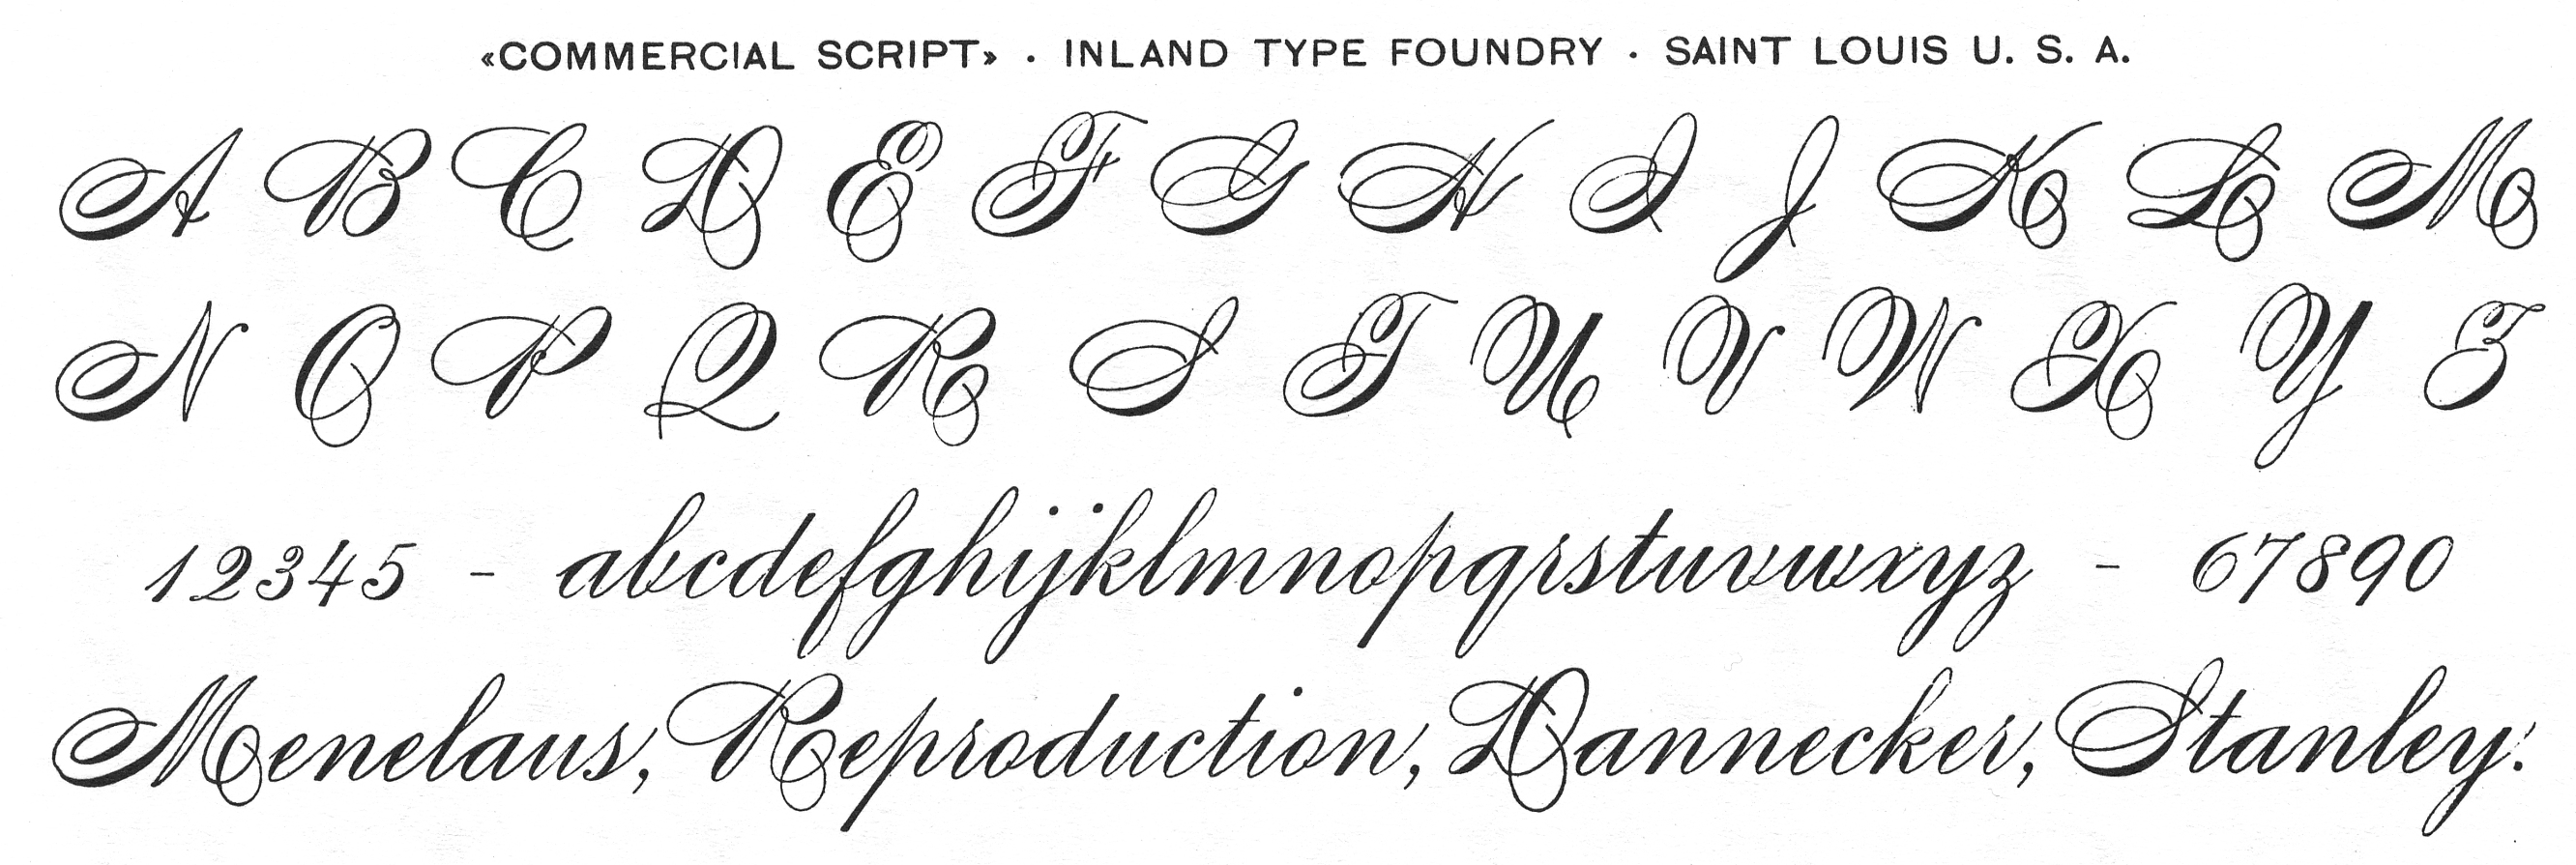 Earliest examples of scripts reproduced in type | Typophile